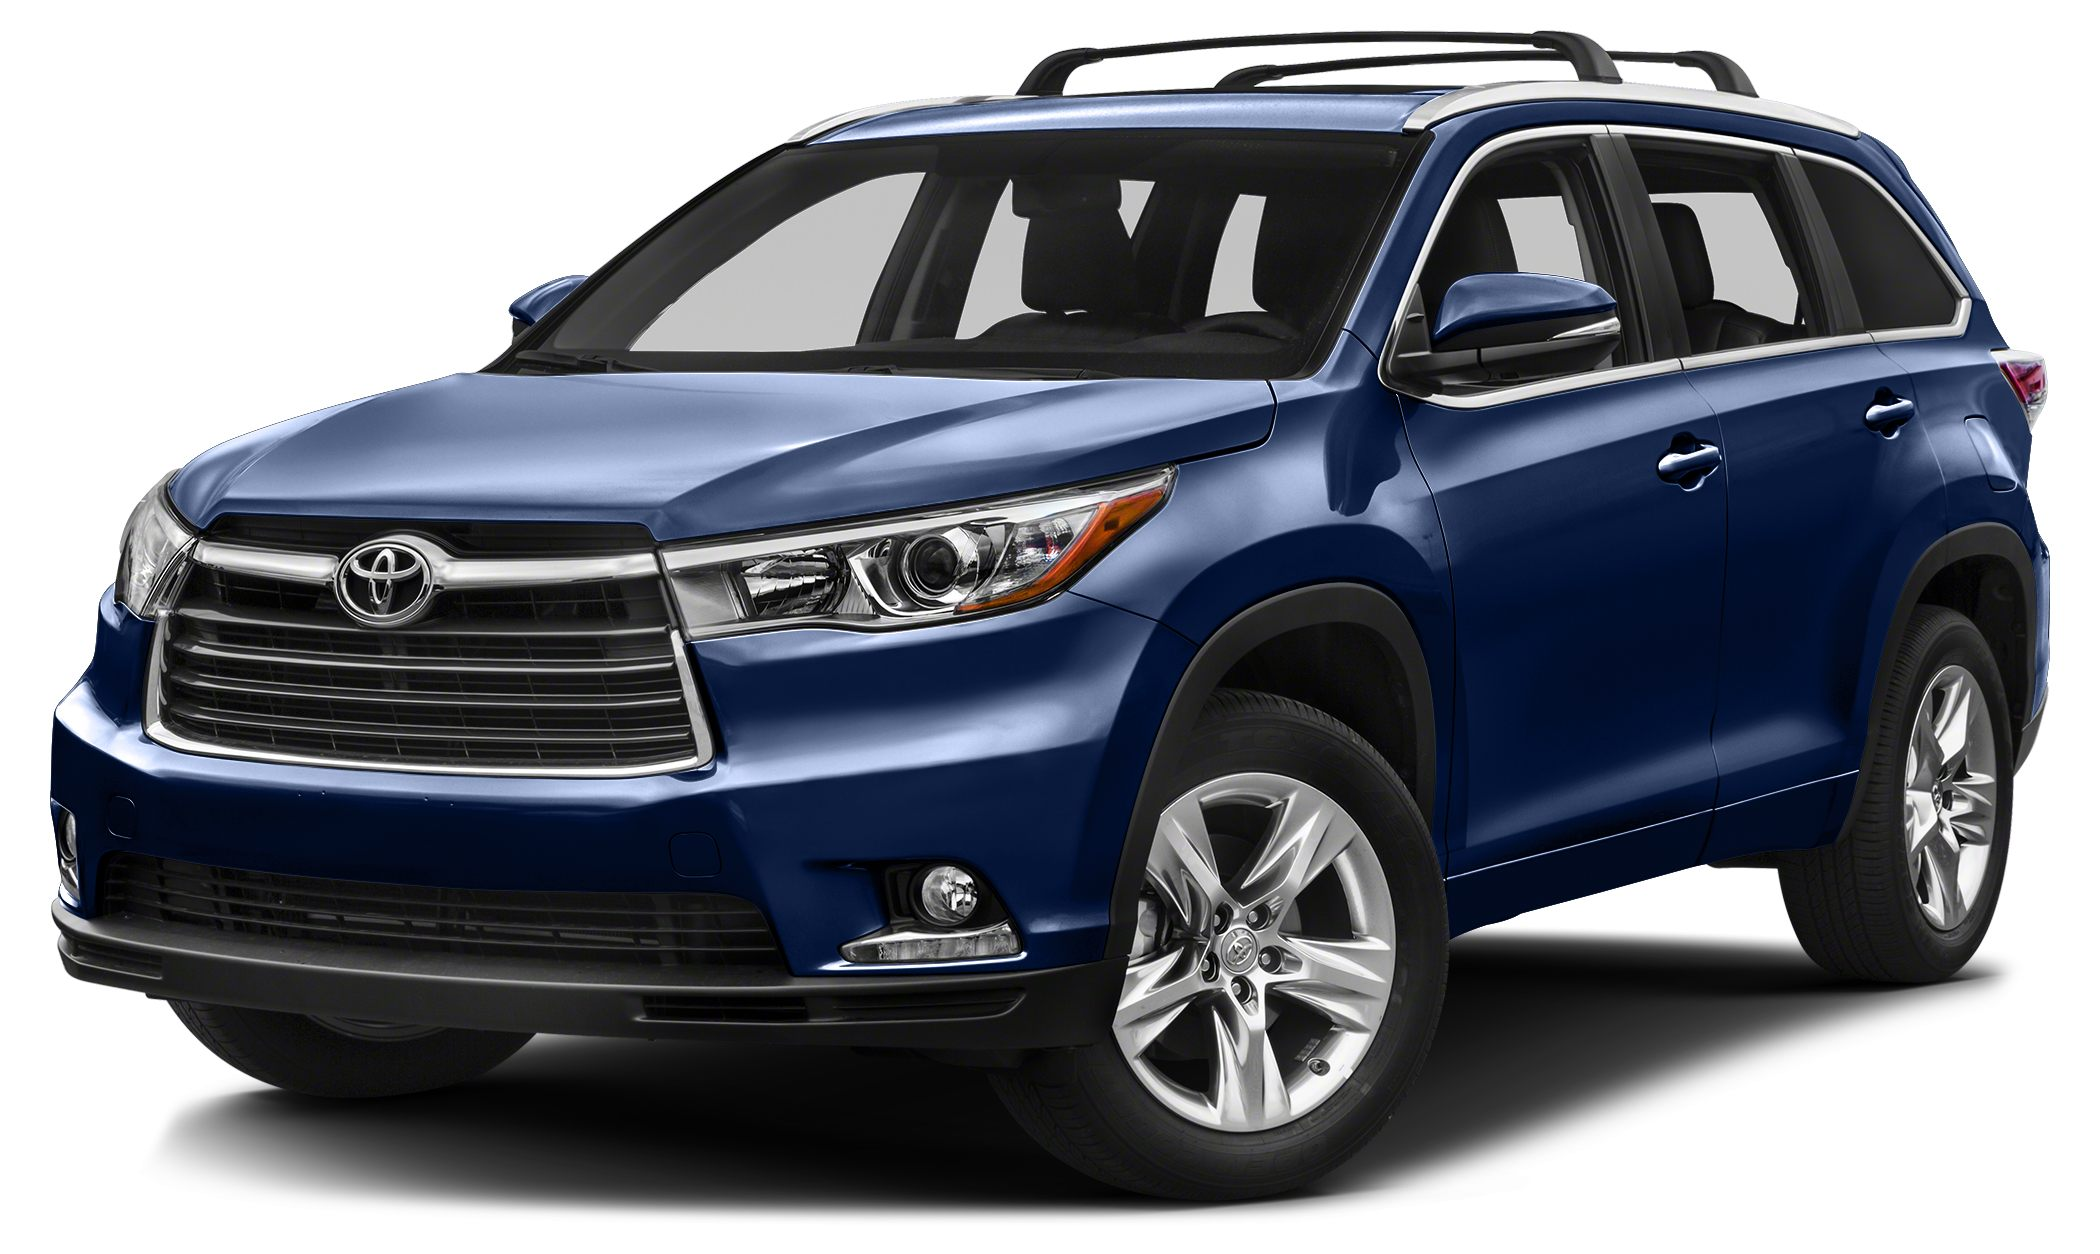 2015 Toyota Highlander XLE Make the most of your weeks and your weekends in the 2015 Highlander C